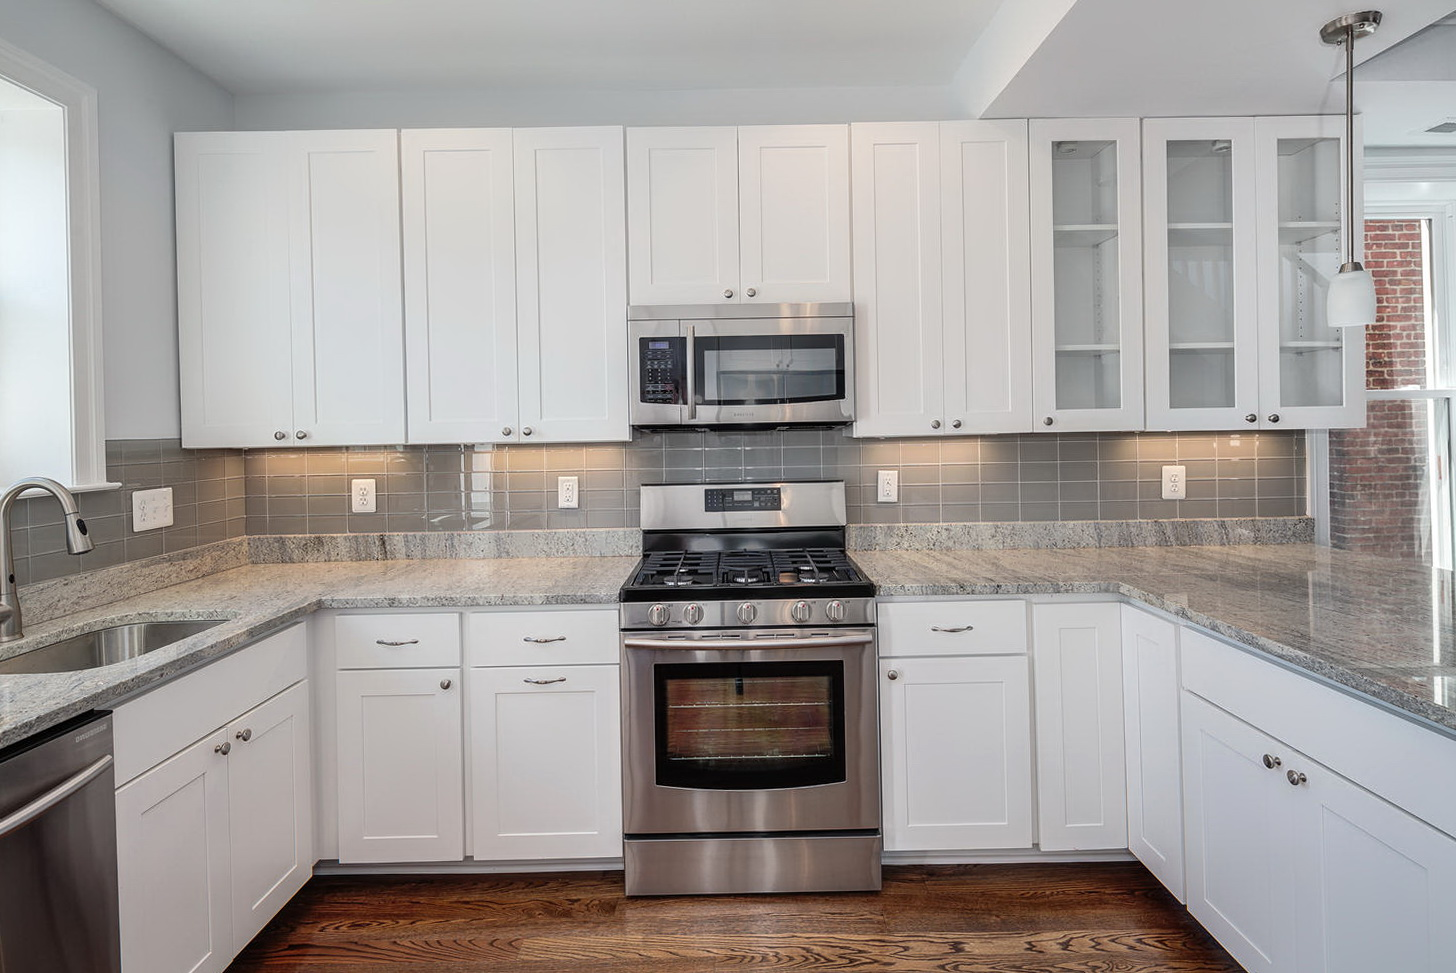 Kitchen Backsplash Tiles With White Cabinets